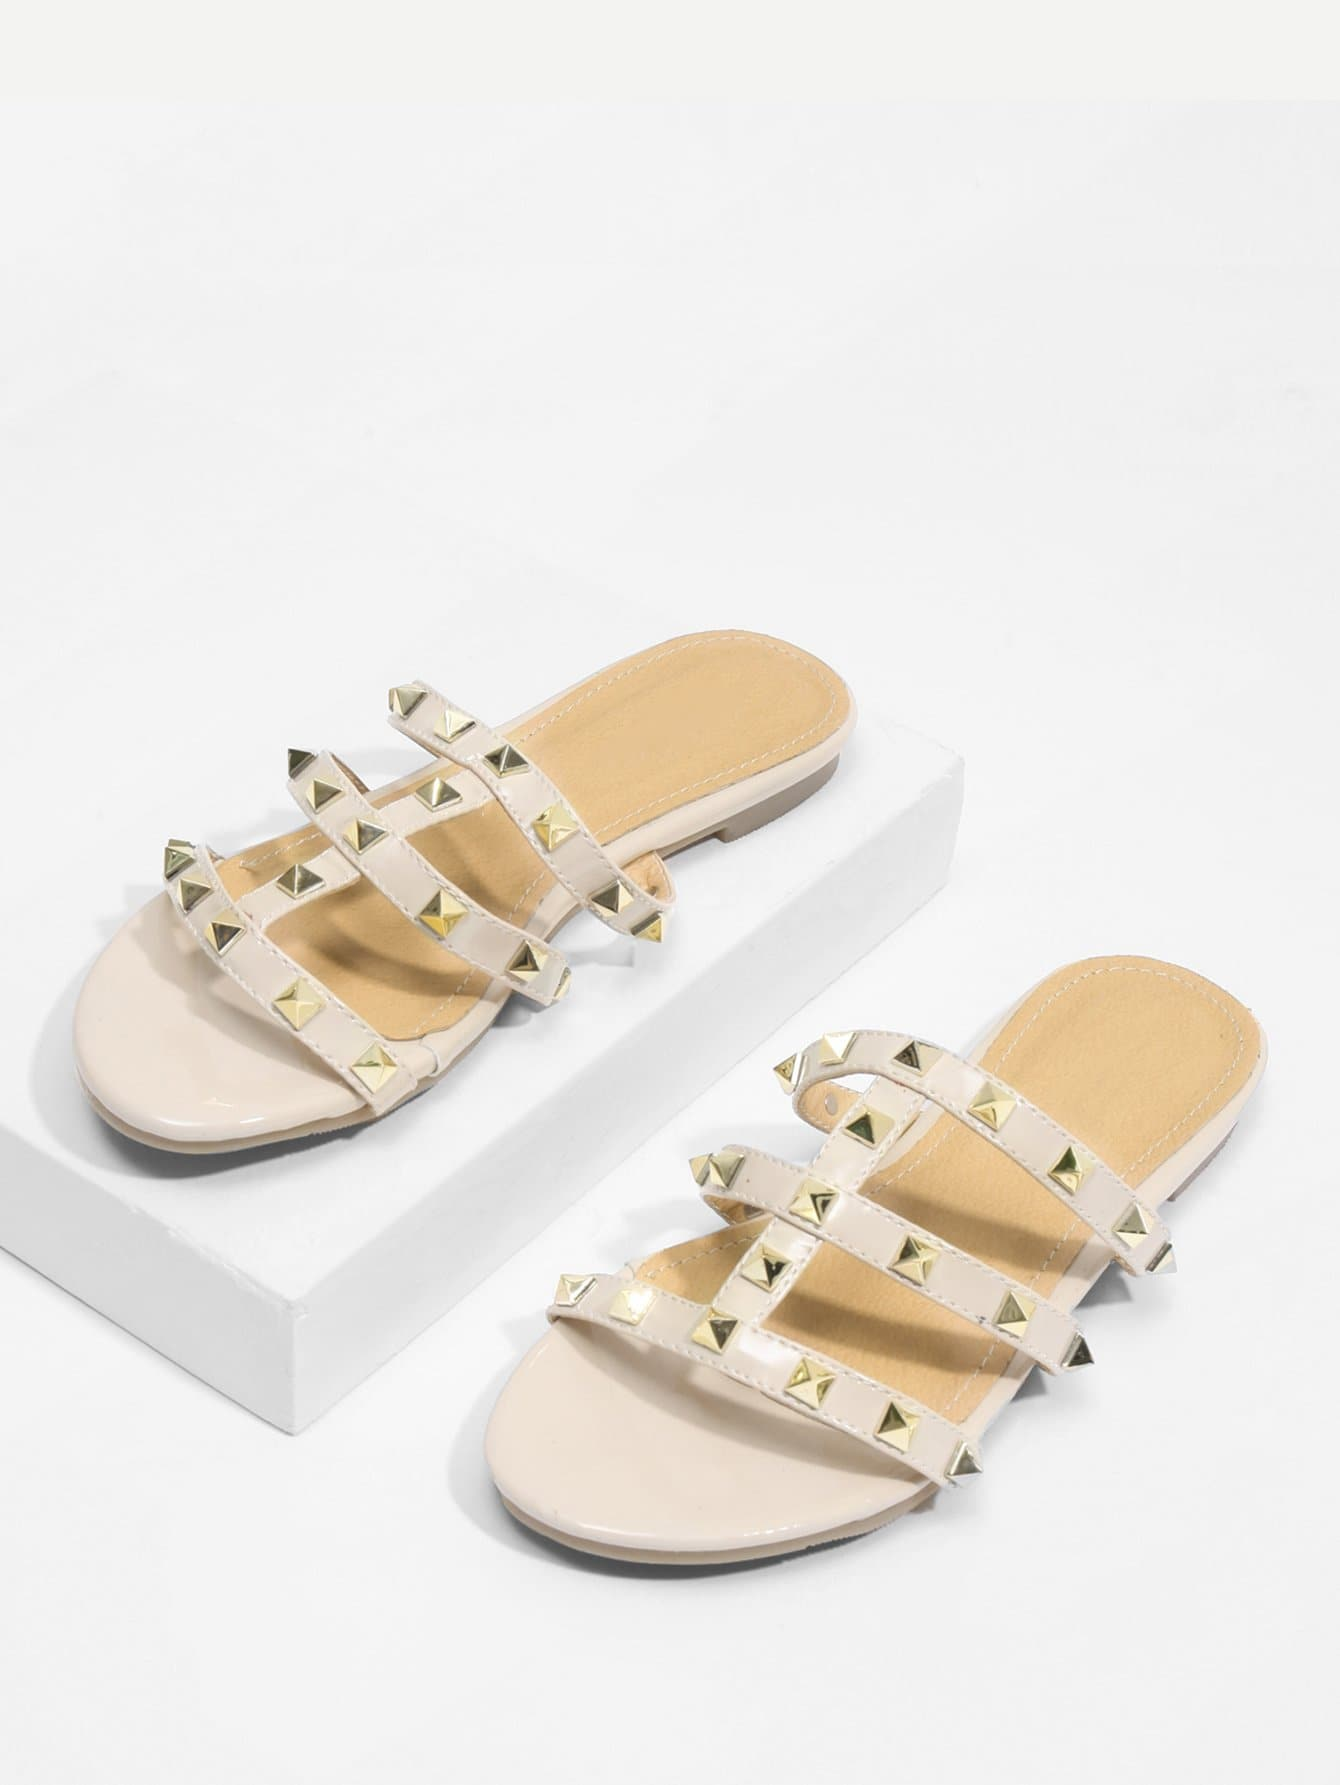 Rockstud Detail Strappy Flat Sandals rhinestone detail strappy sandals